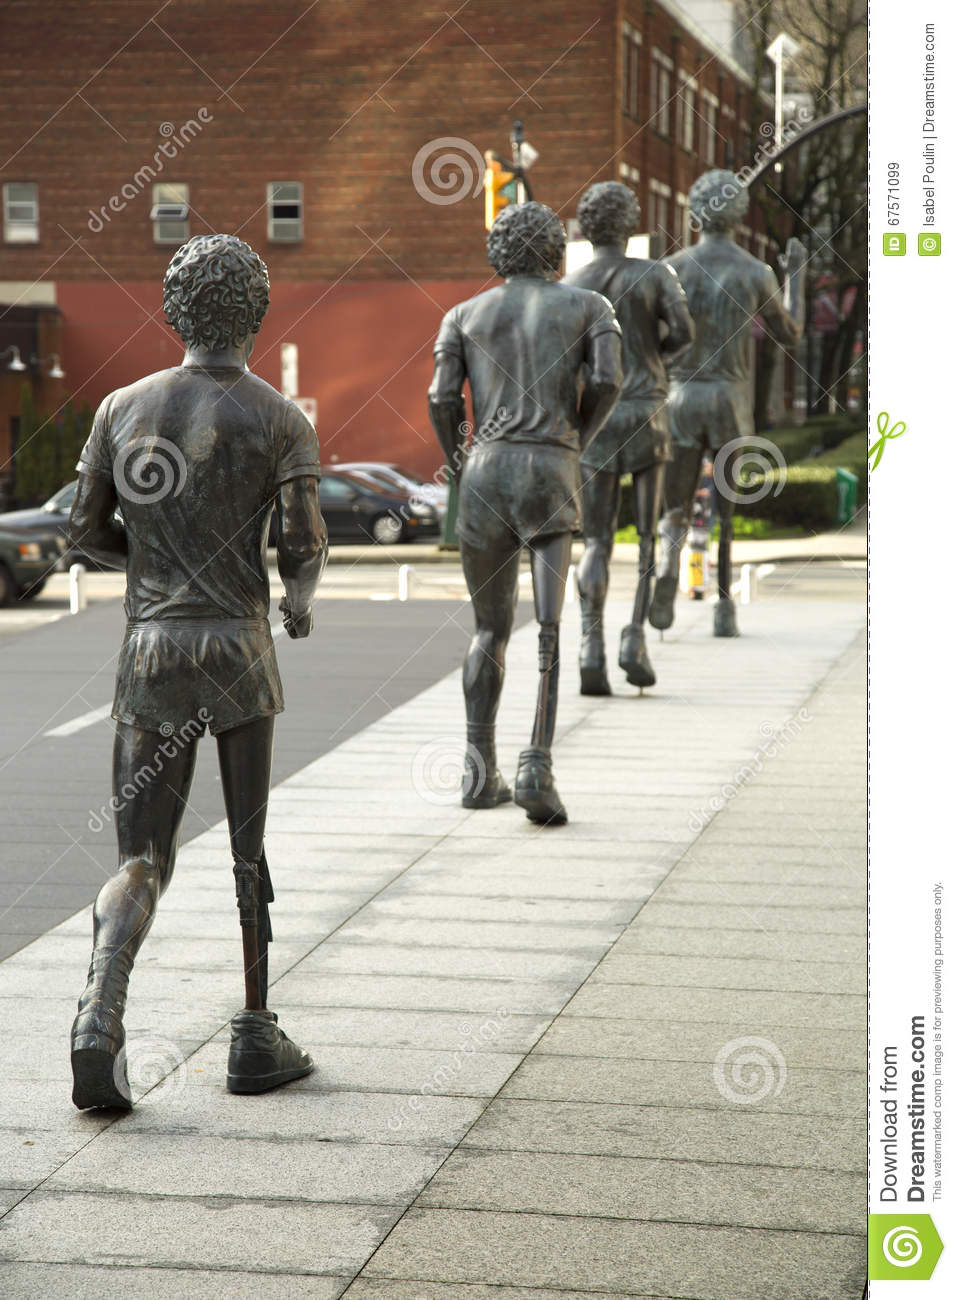 Terry Fox Statues Editorial Stock Image - Image: 67571099 | 957 x 1300 jpeg 165kB